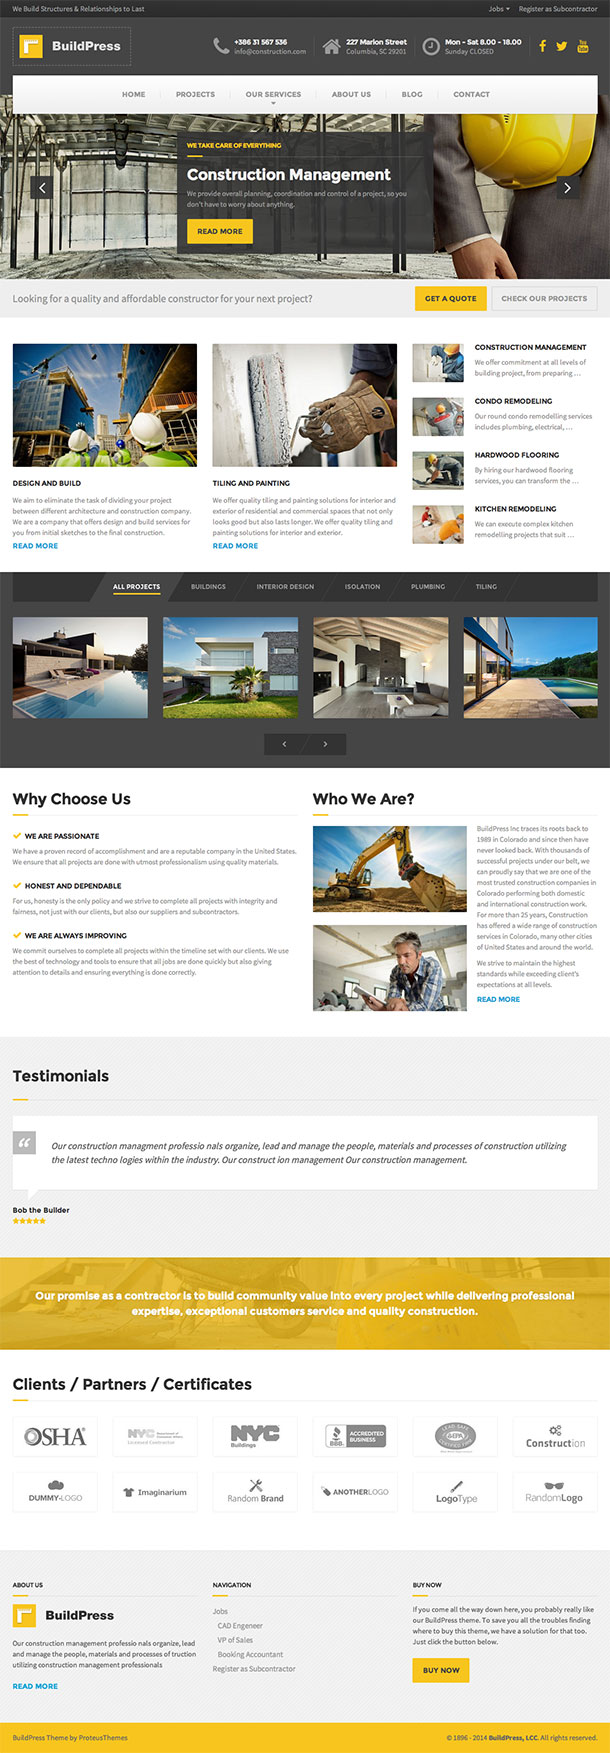 BuildPress-WordPress-Theme